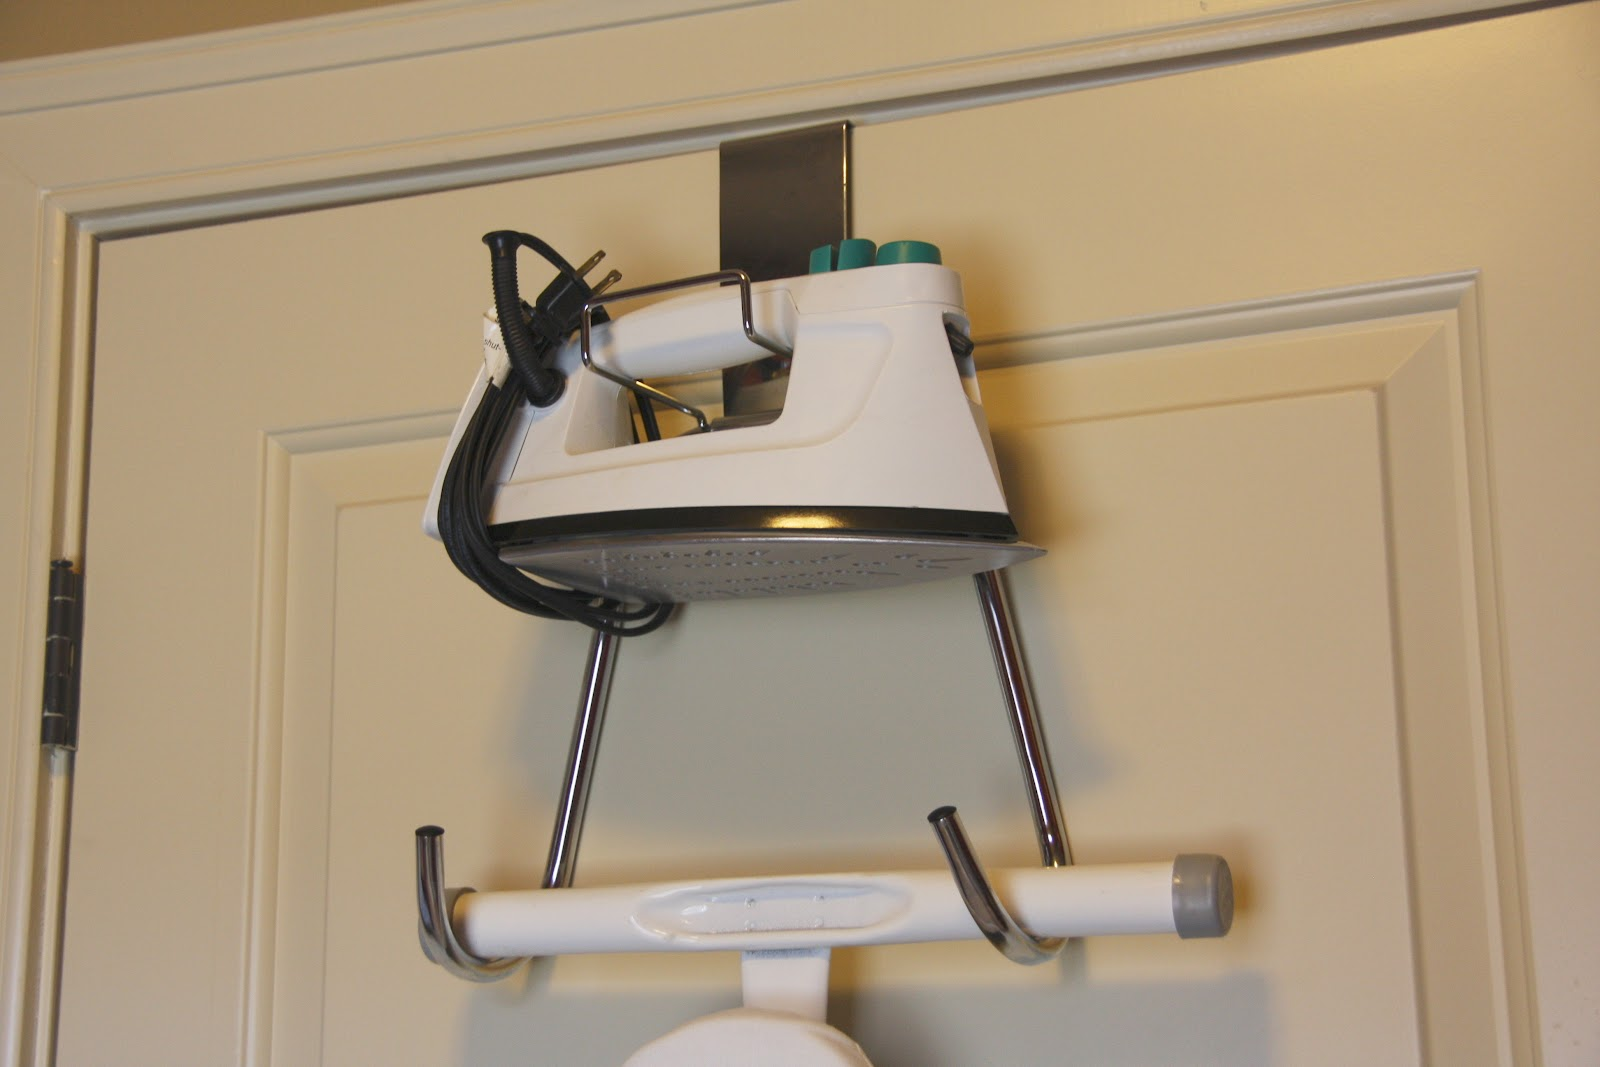 simply organized: simple solution: ironing board organizer